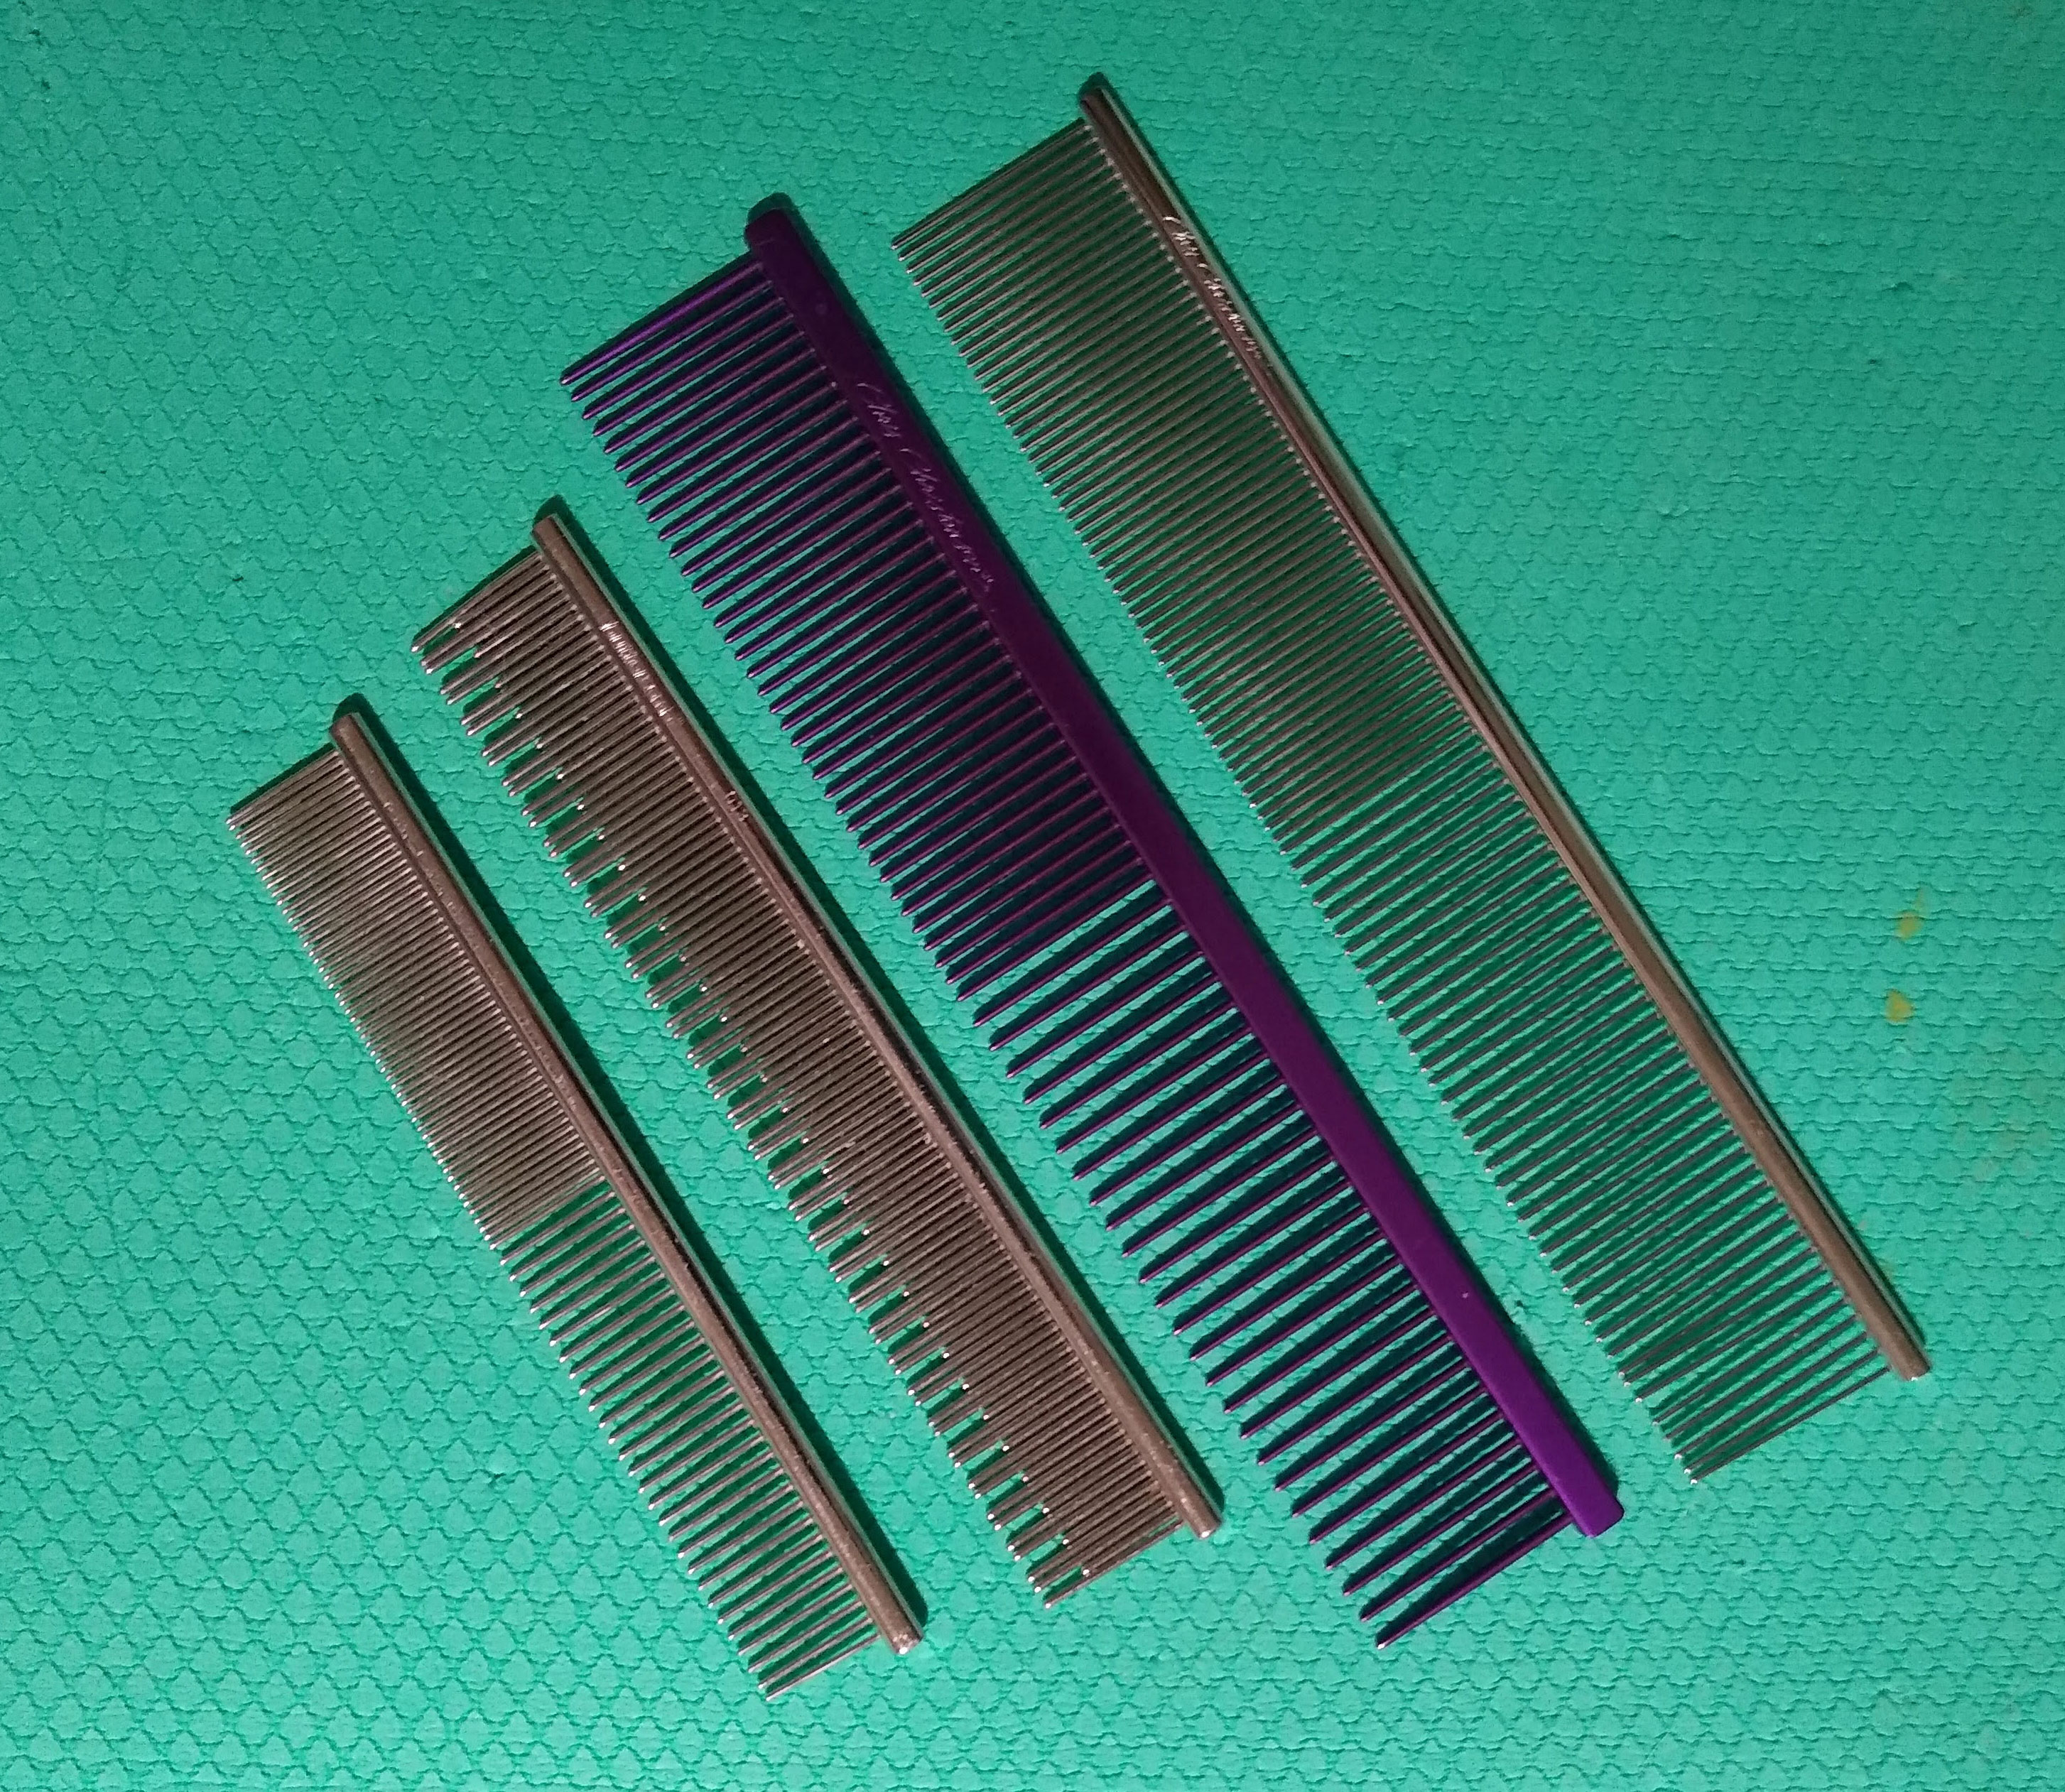 My favorite and most used combs.